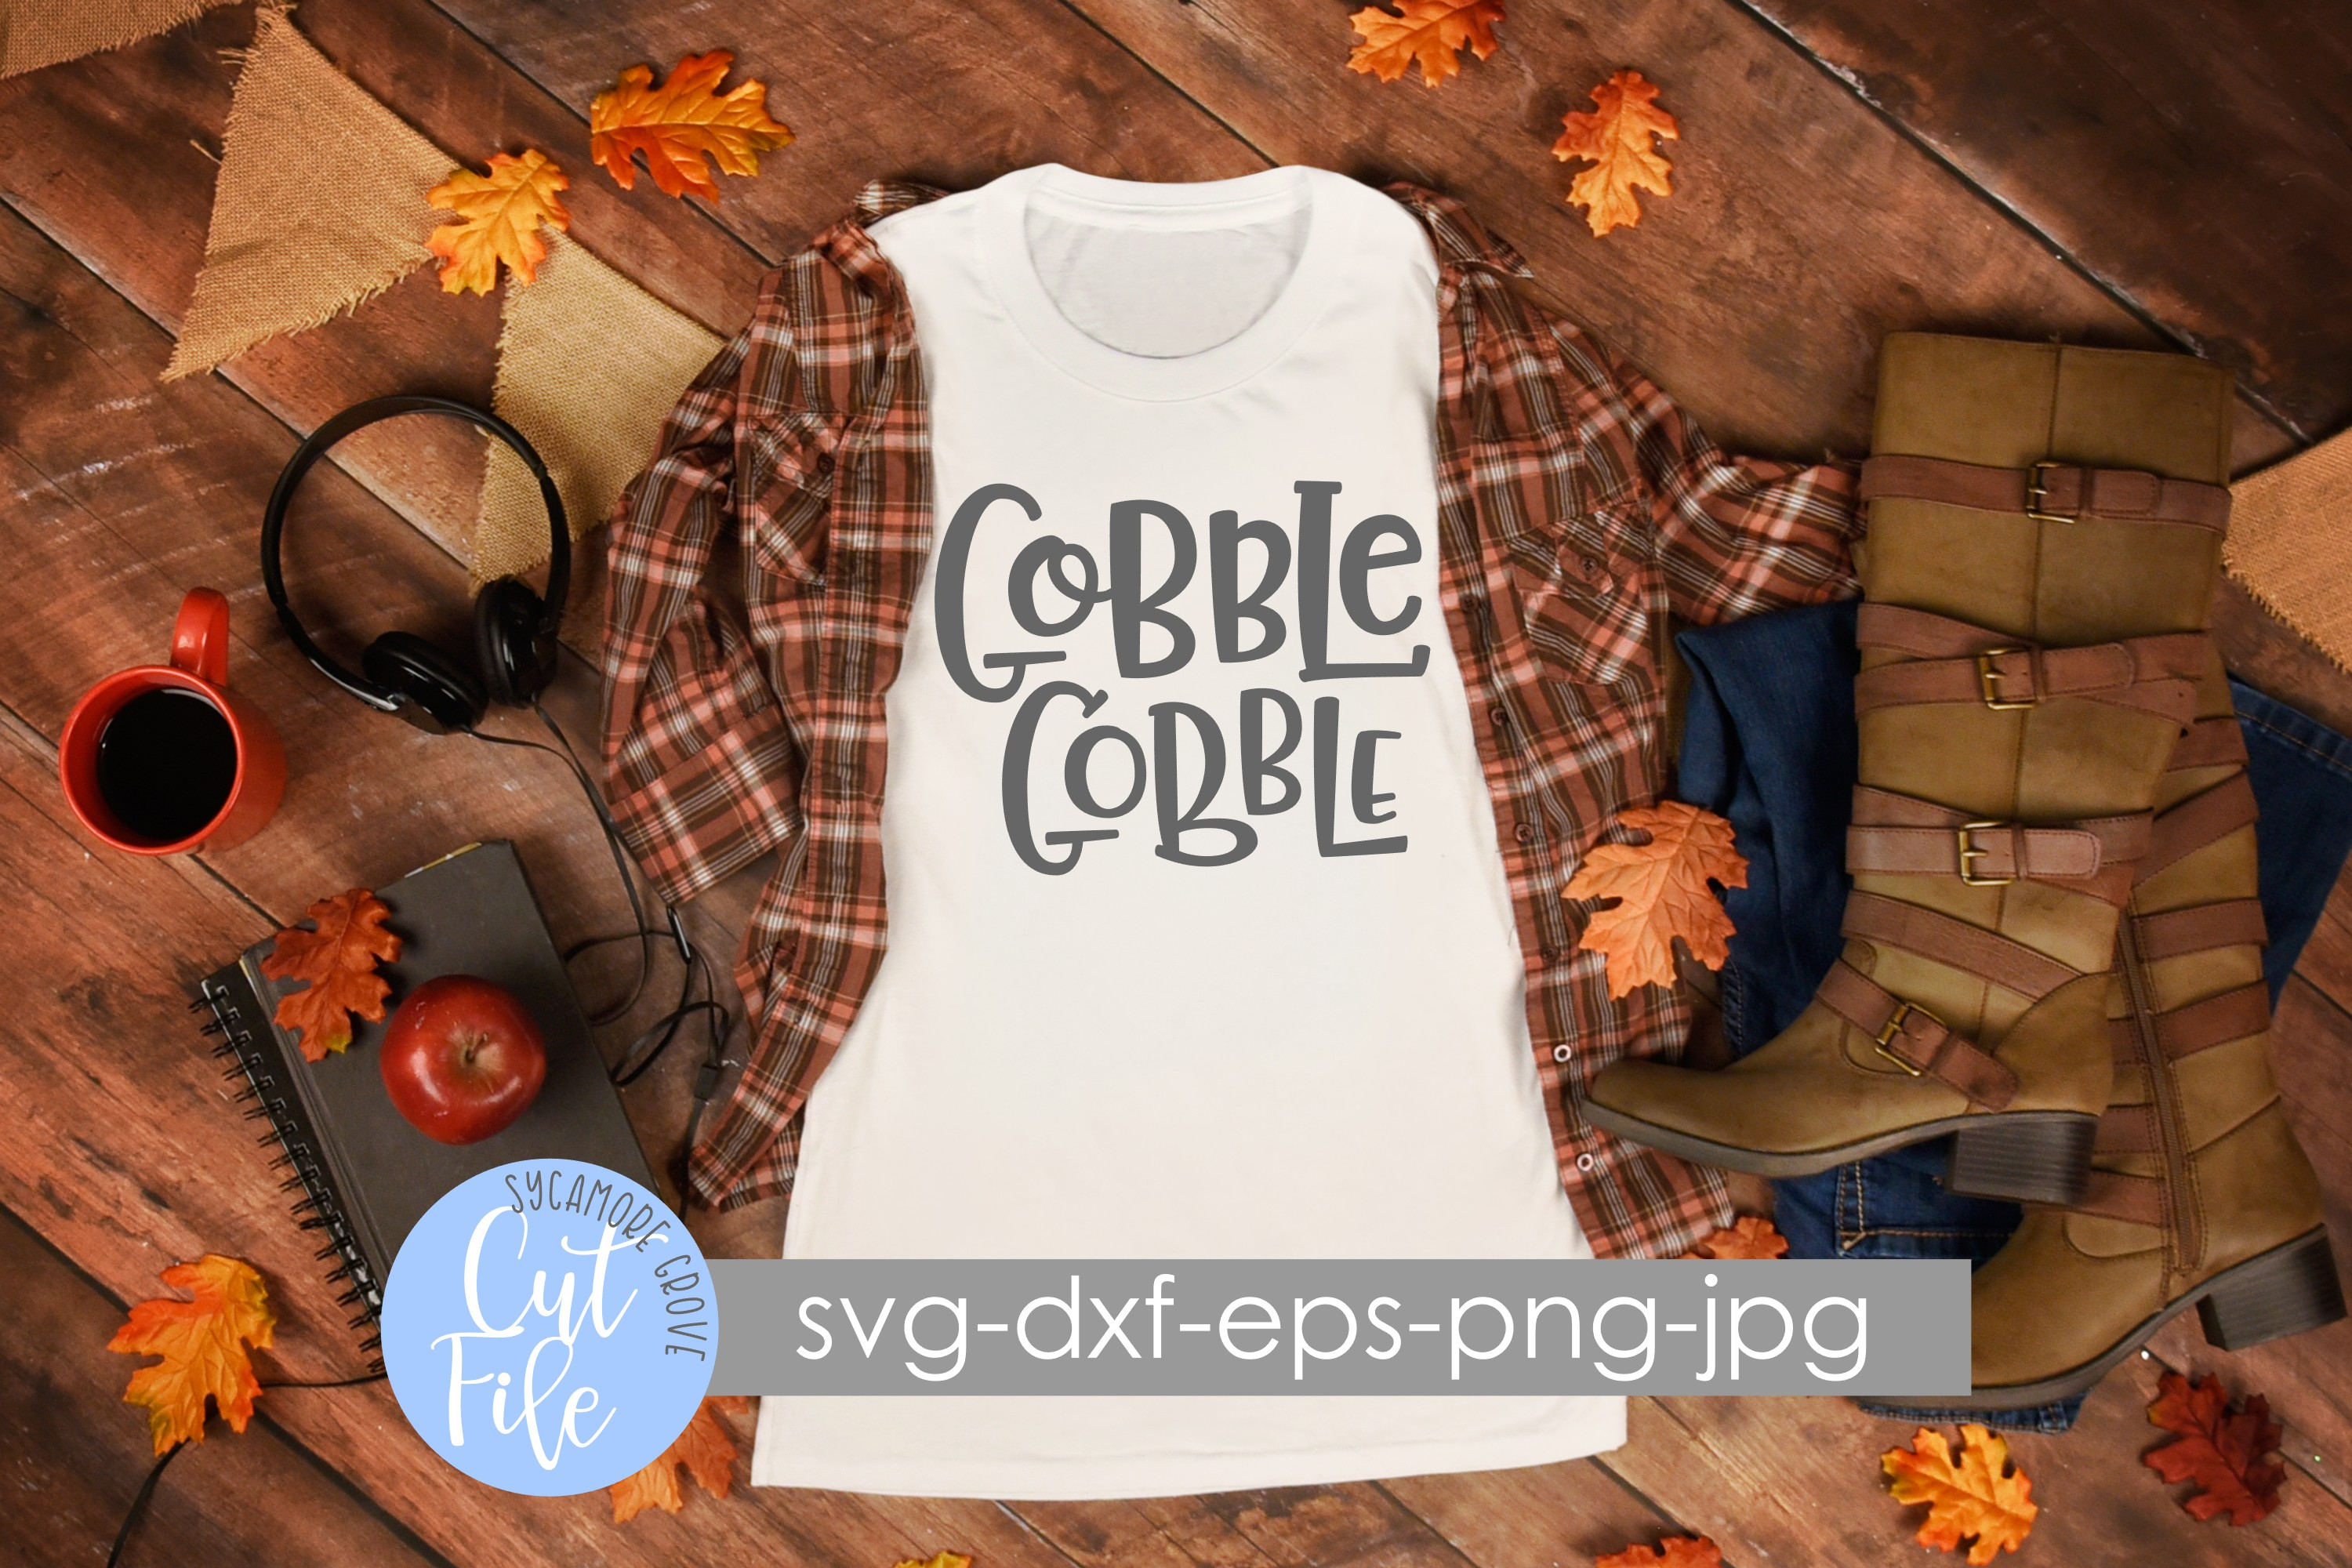 Gobble Gobble | Thanksgiving | Fall | SVG Cut File example image 2